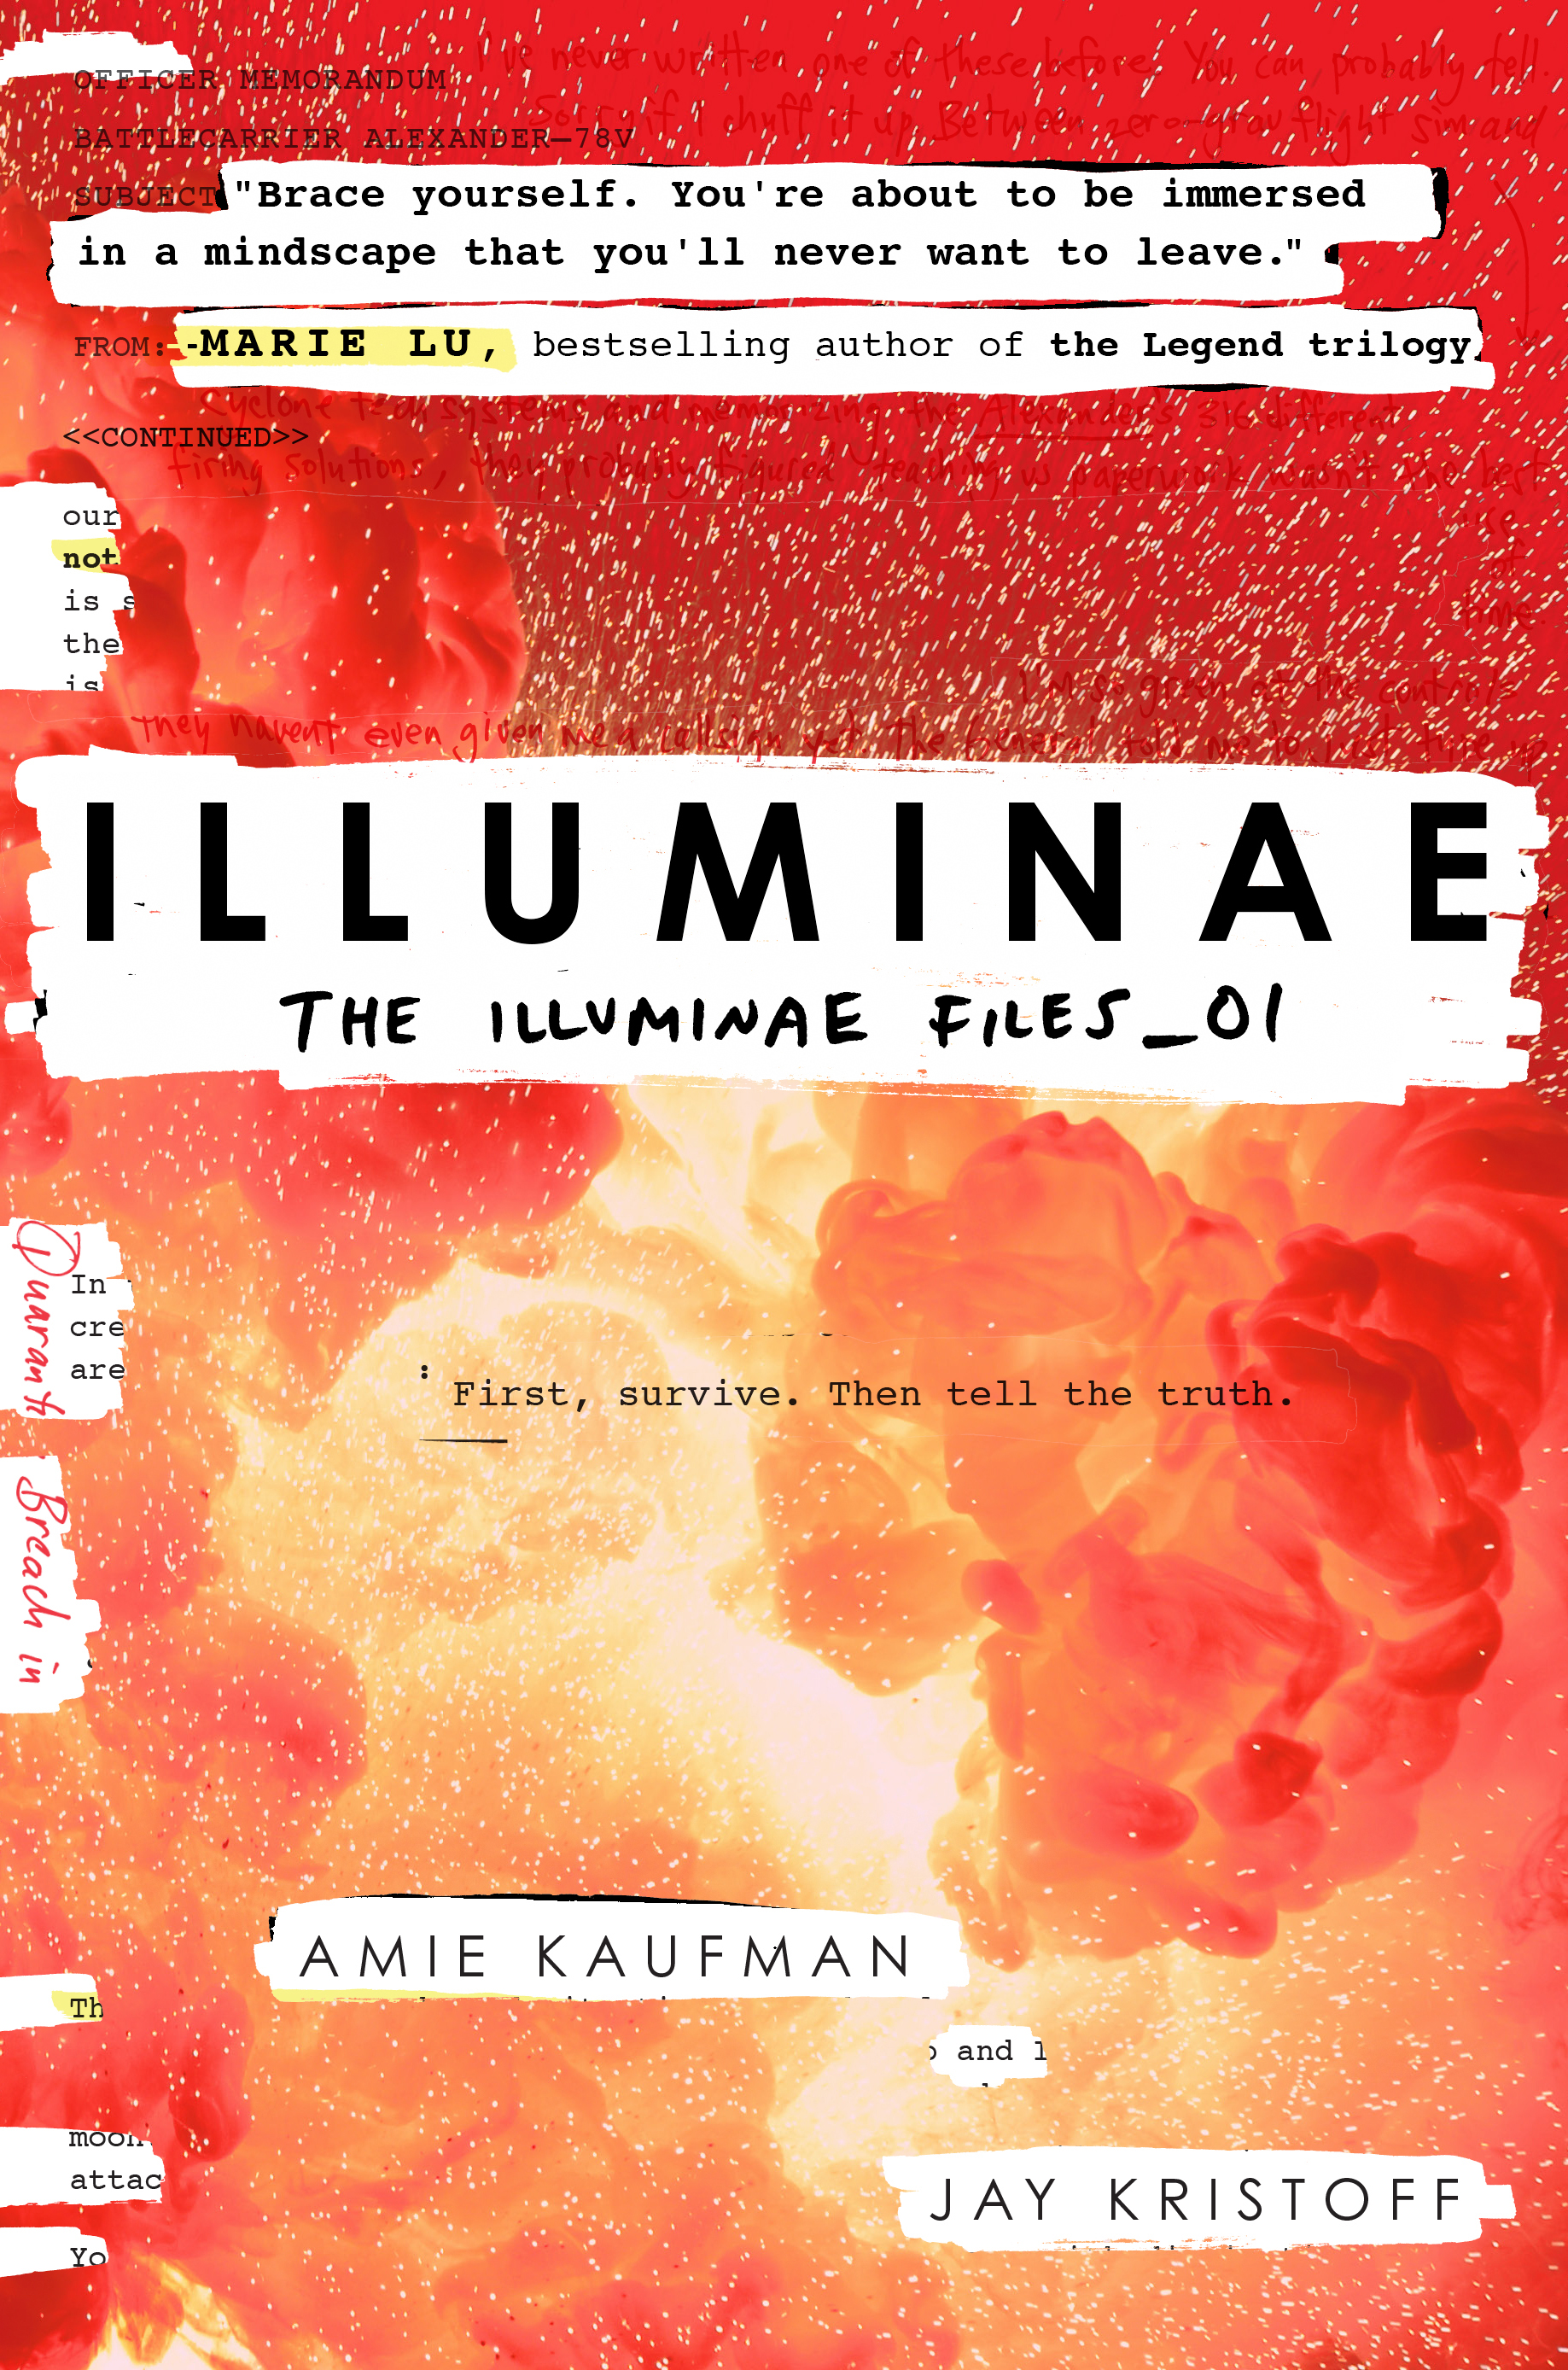 Image result for illuminae amie kaufman jay kristoff